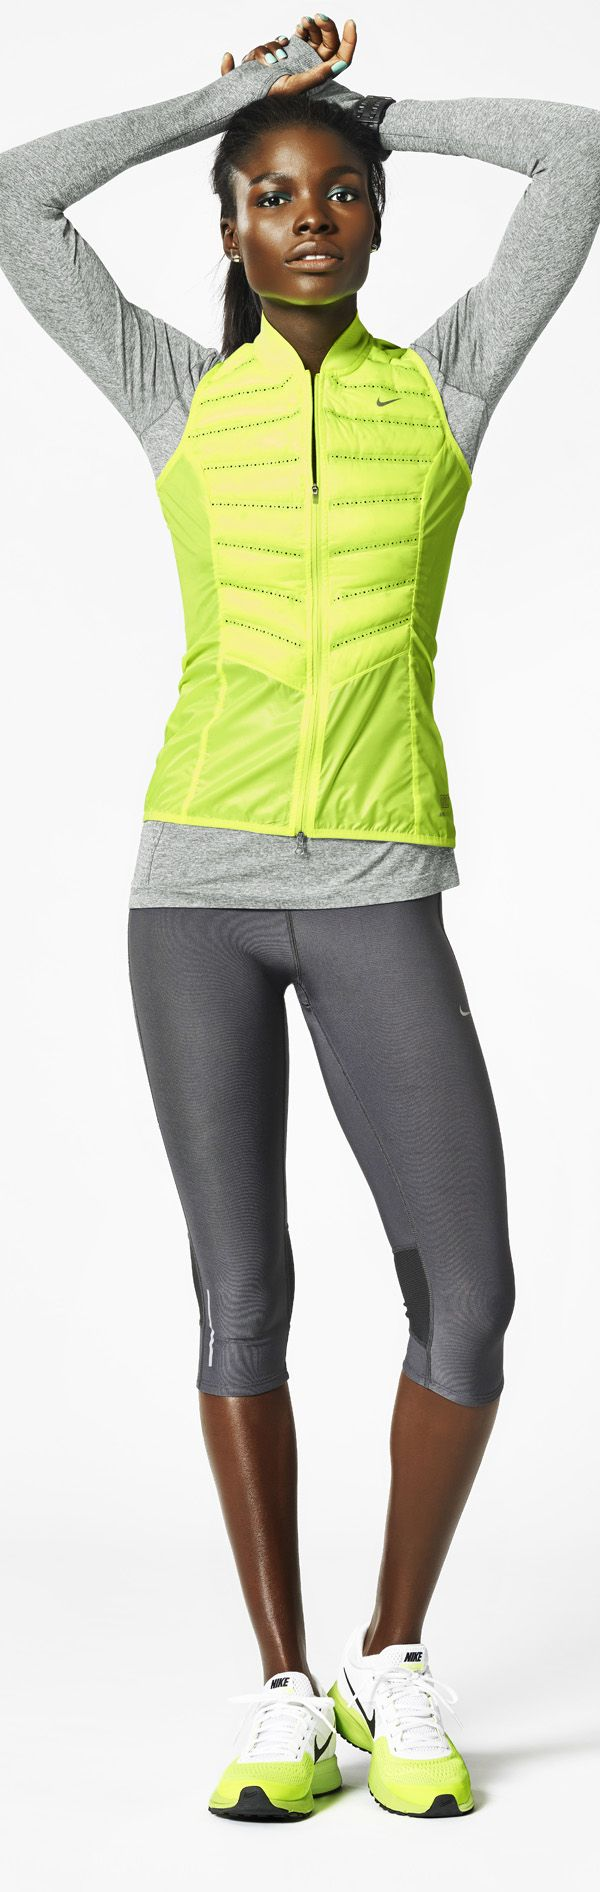 Light up your run. #Nike #running #style https://twitter.com/gmsingin1/status/915364725248057345